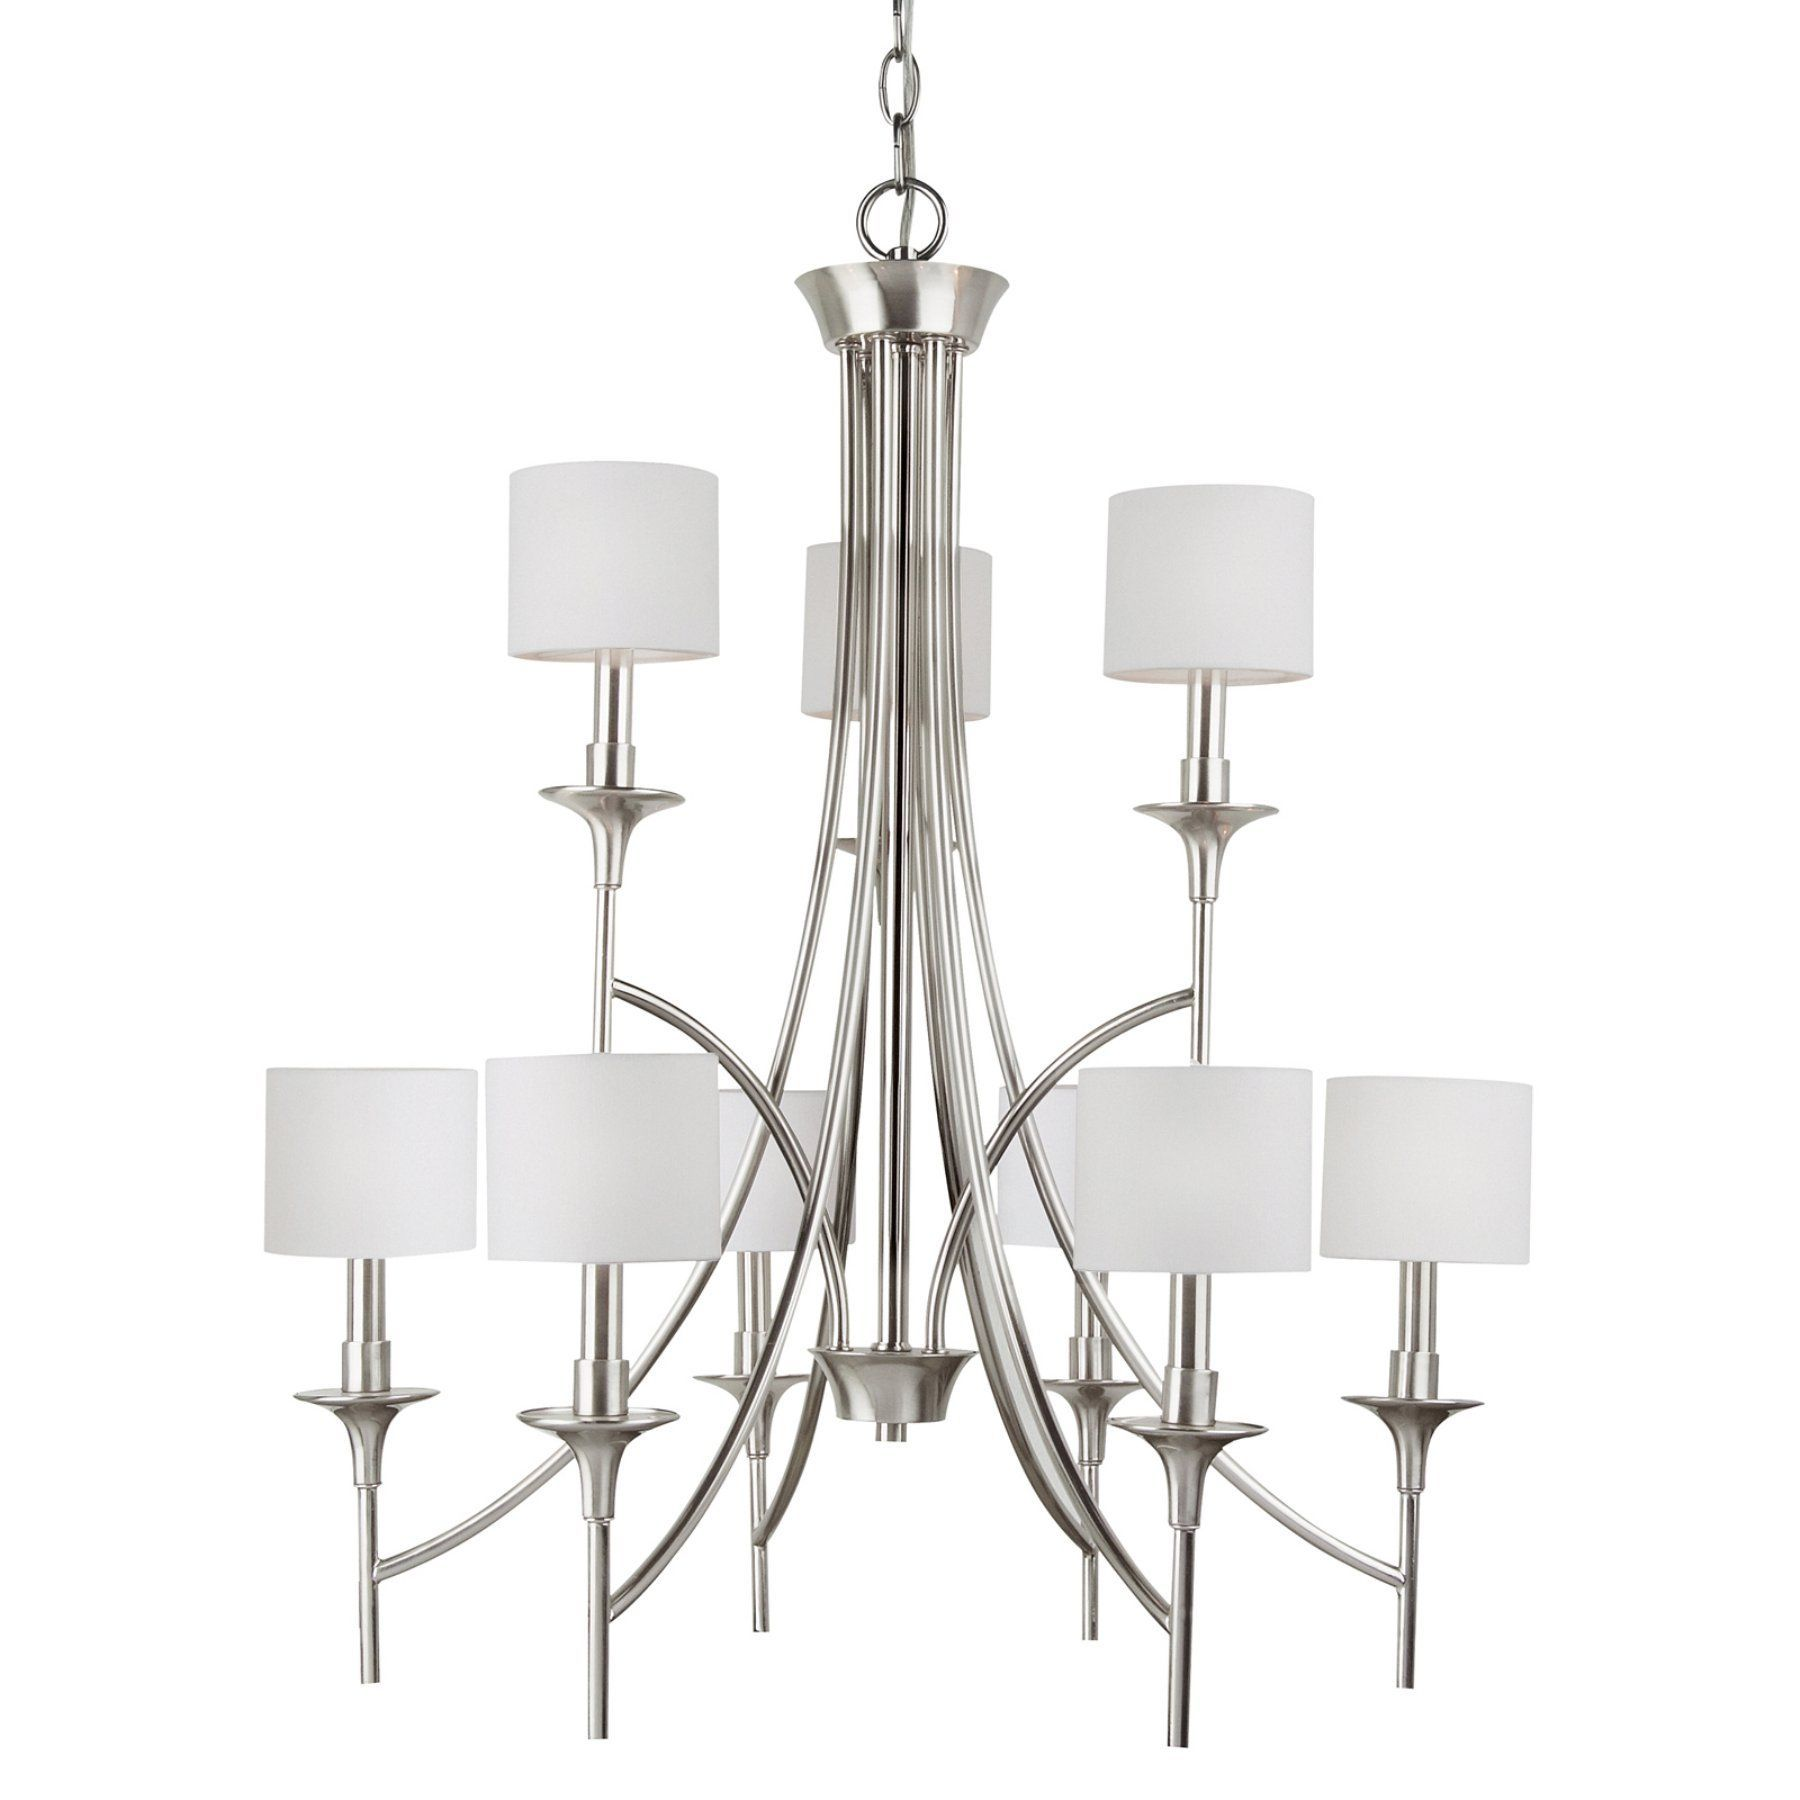 Sea Gull Lighting Stirling 962 9 Light Chandelier 30 diam